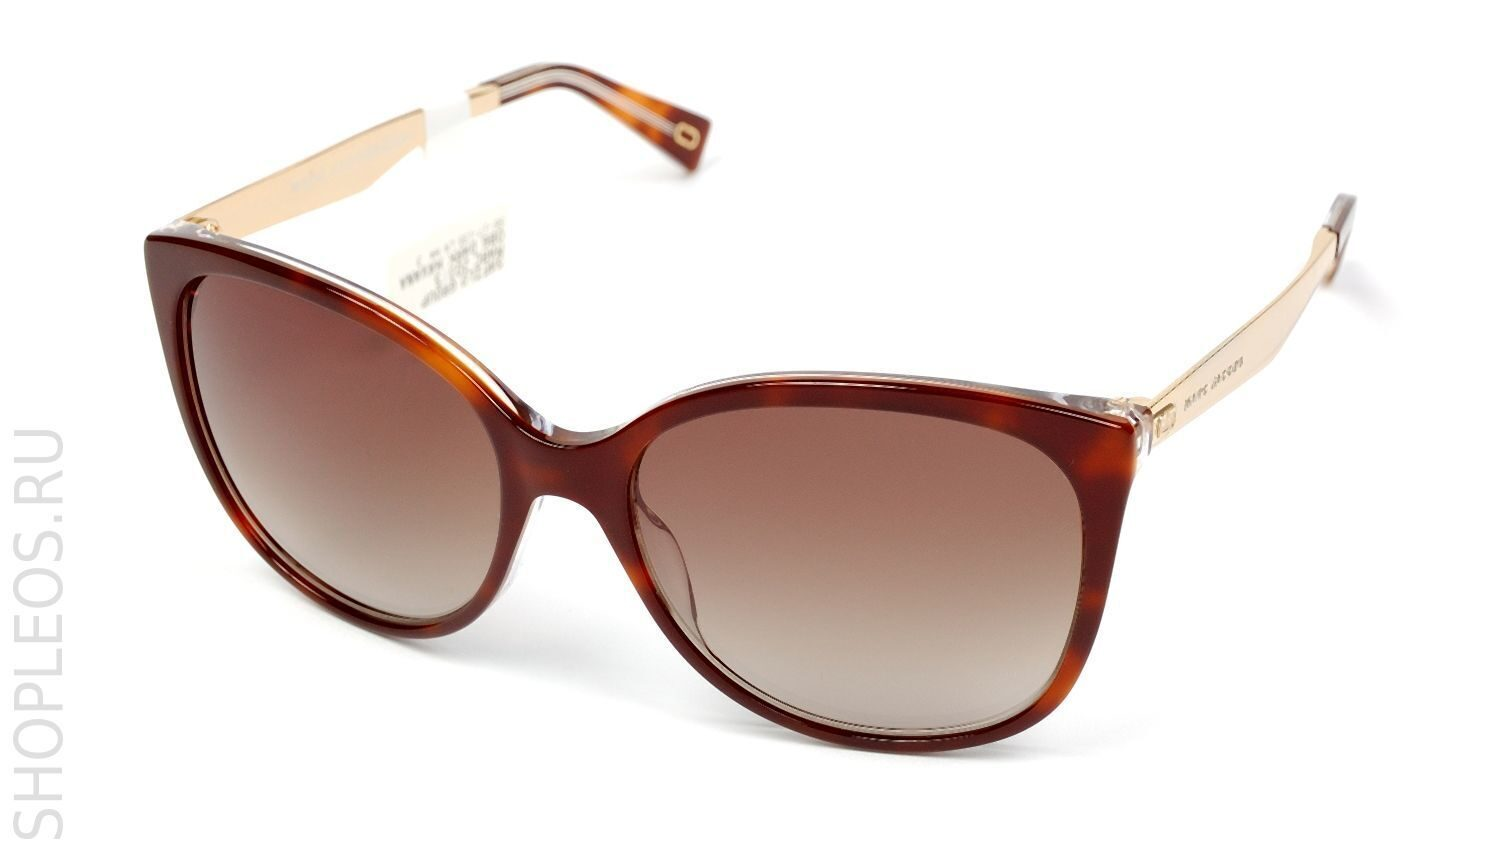 MARC JACOBS WOMAN MARC 203/S 086